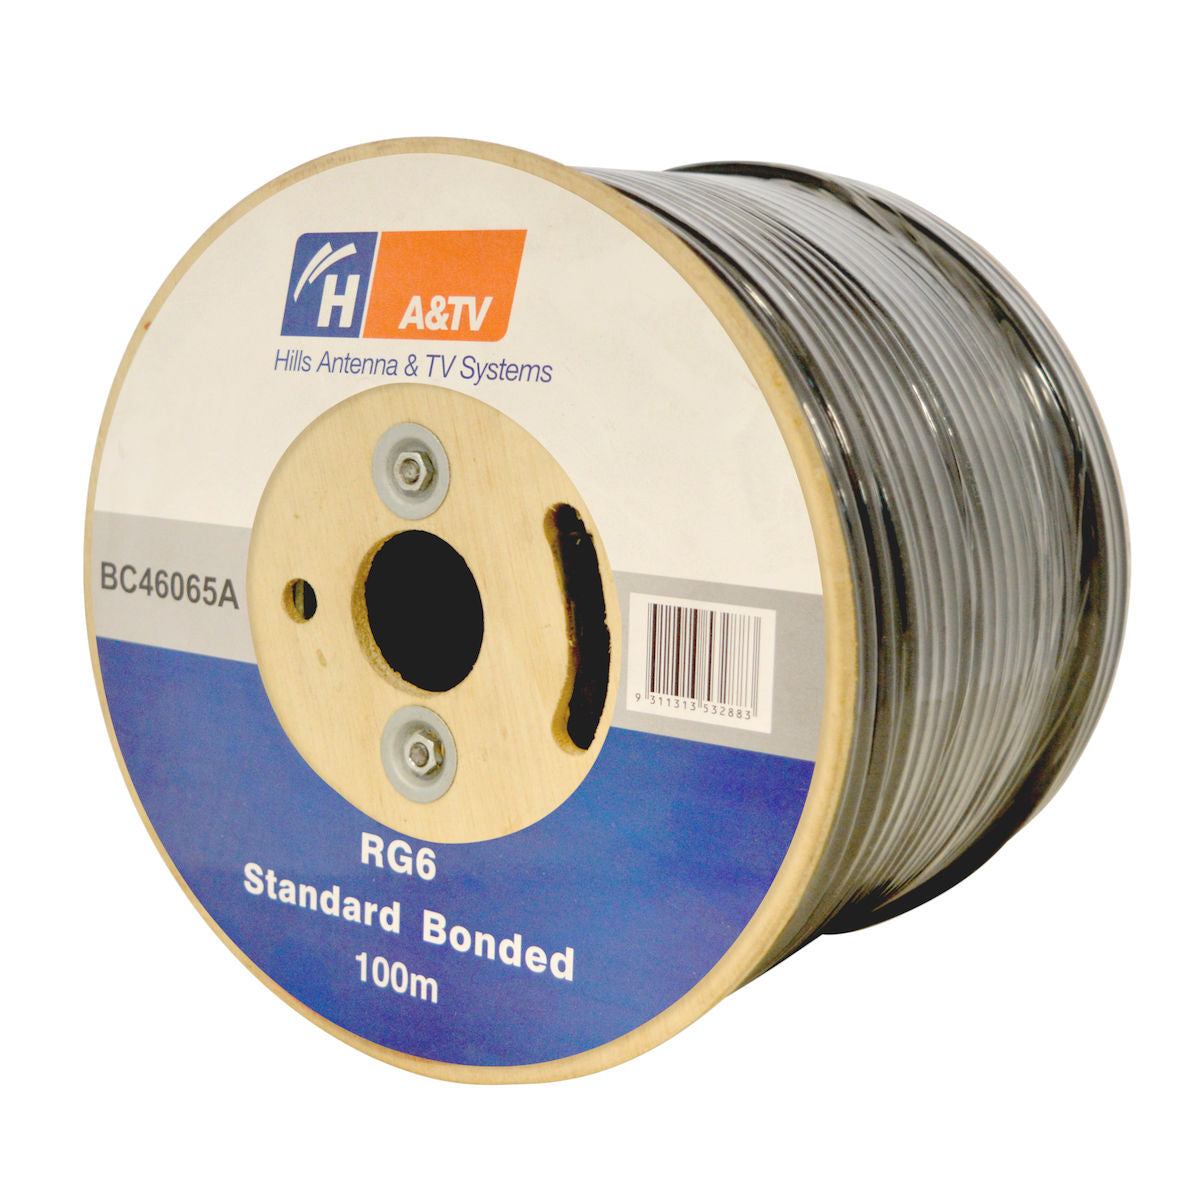 Hills BC46065A RG6 Standard Bonded 100m Coaxial Cable Reel